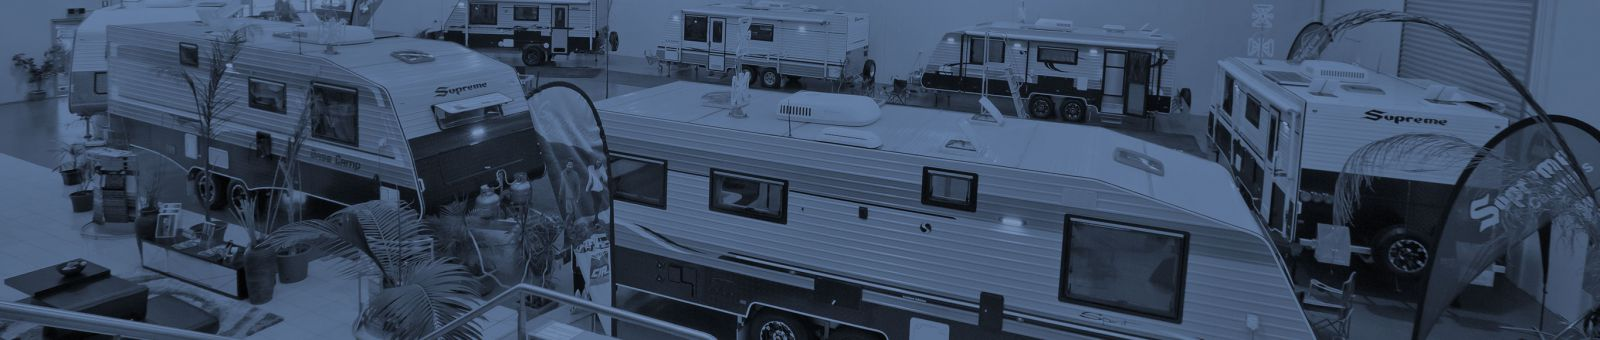 Sydney Caravan Dealership